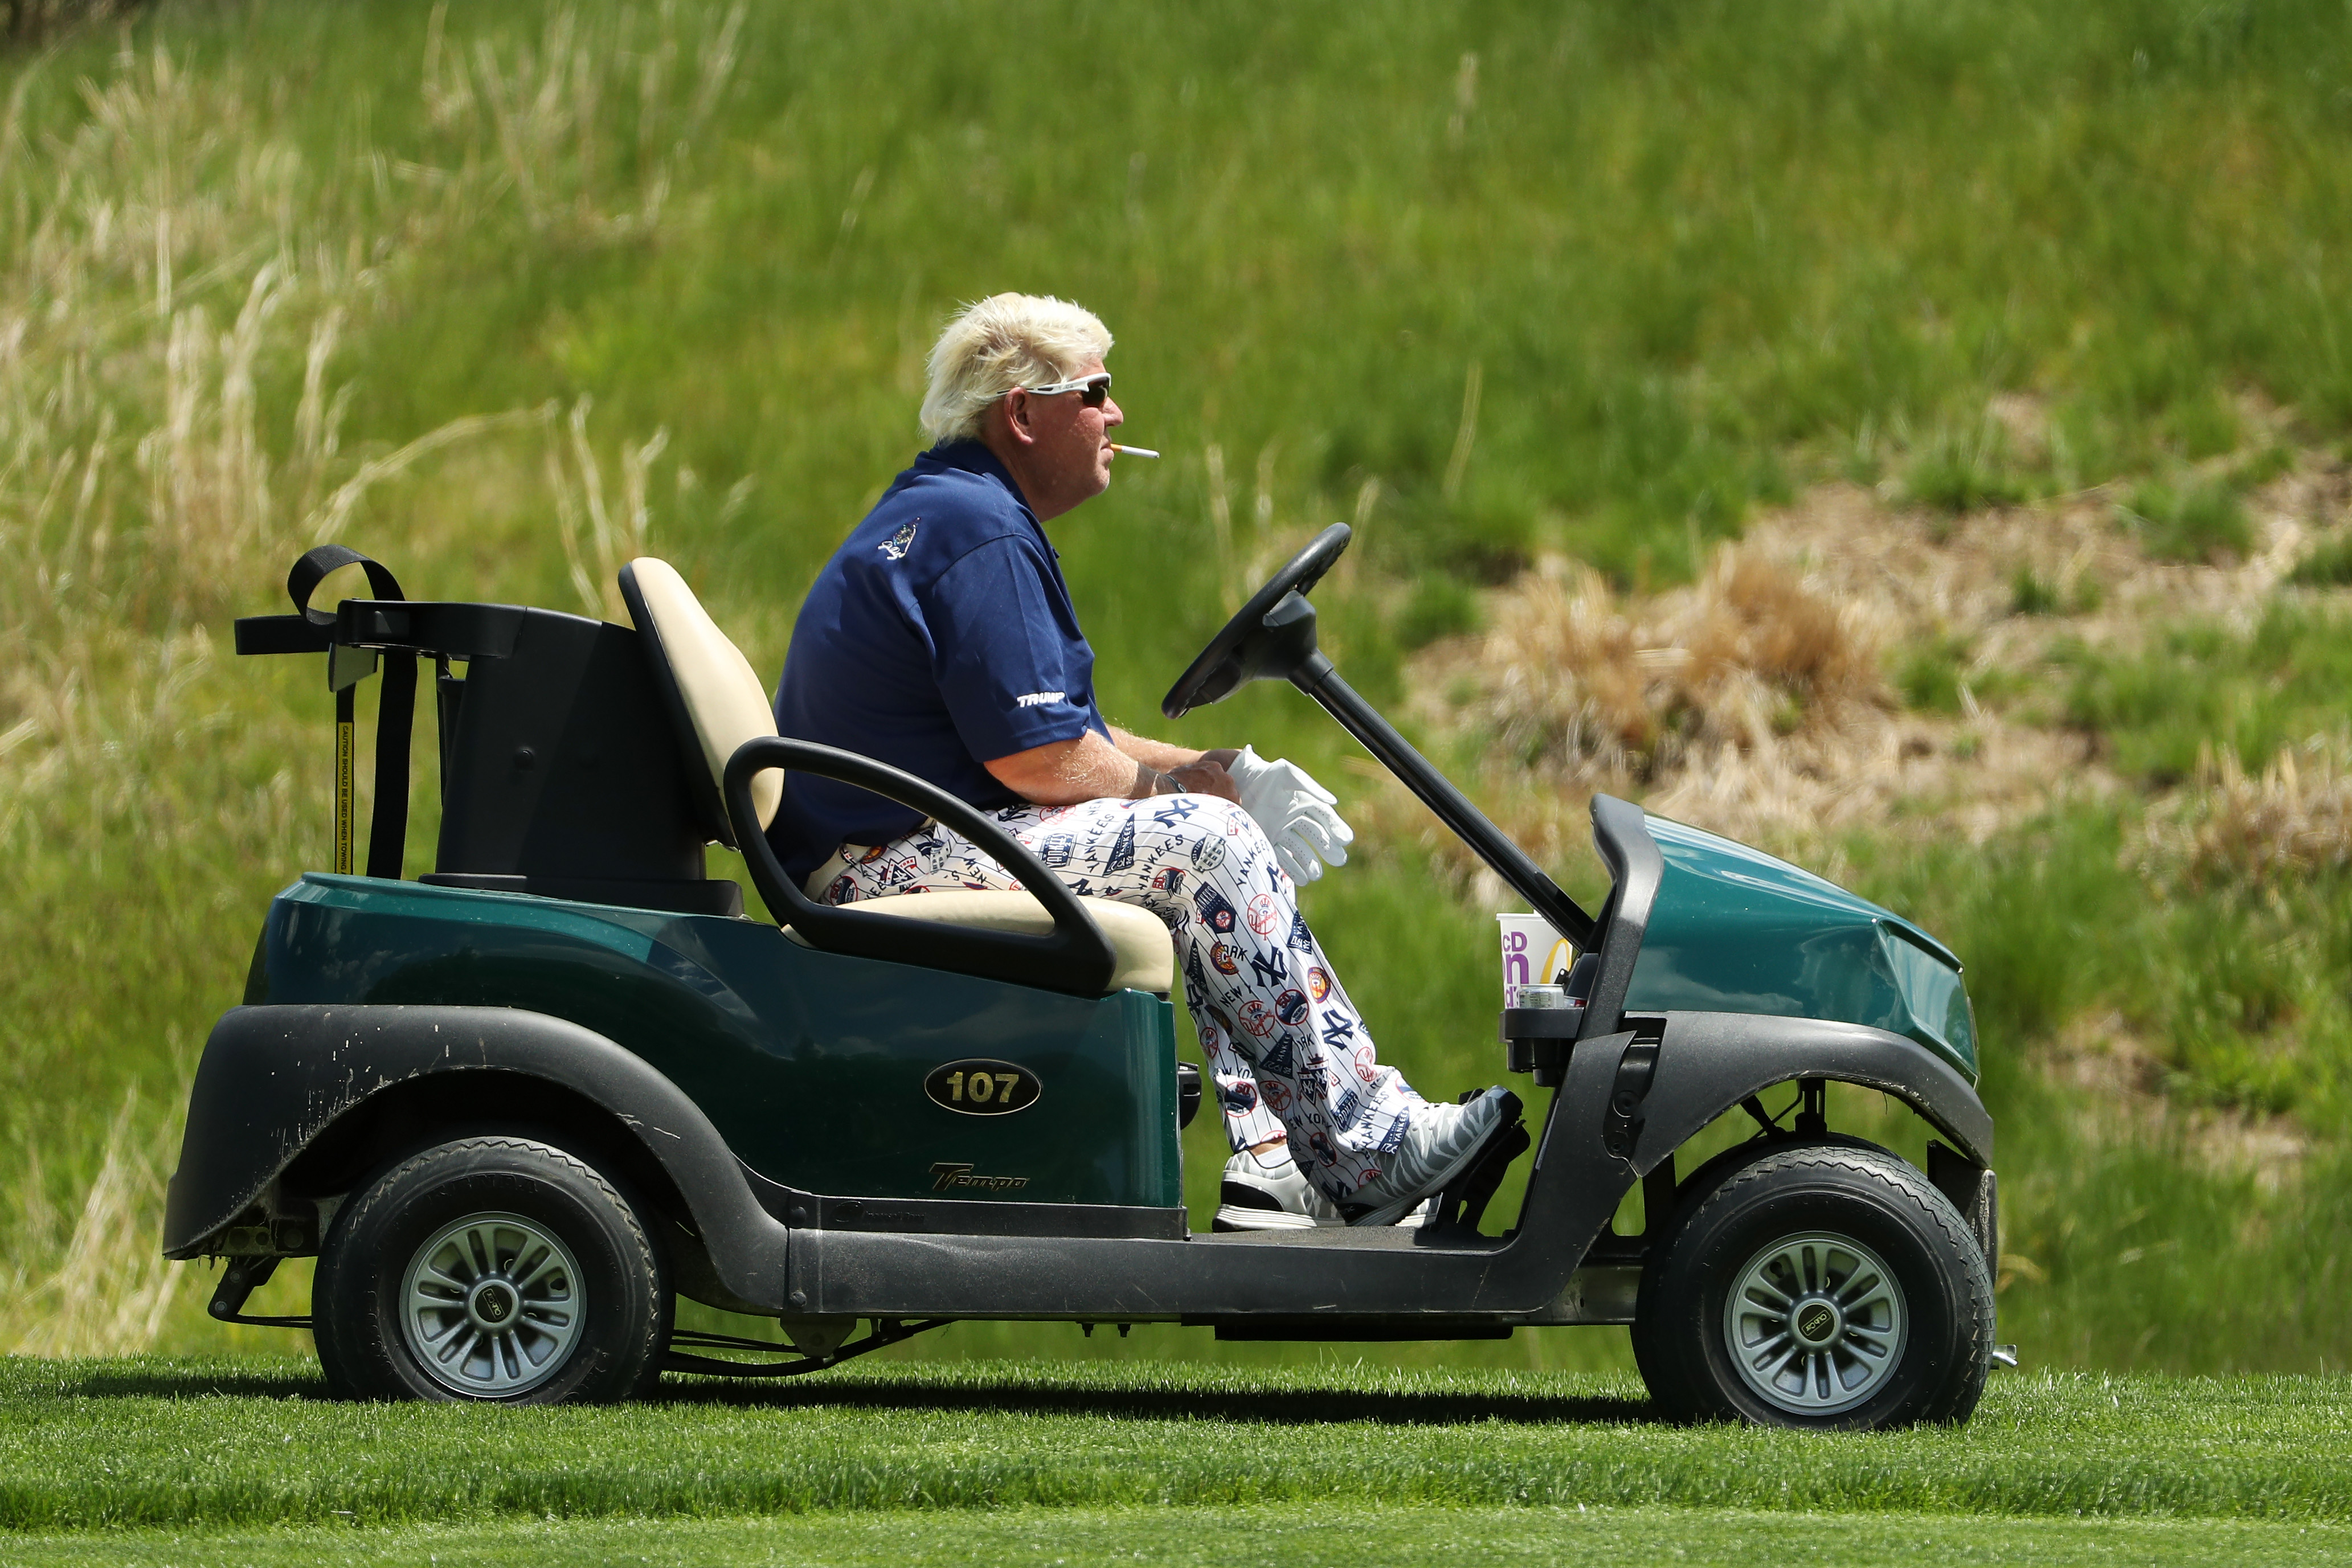 John Daly has his golf cart and cigarettes, but still looks miserable at the PGA